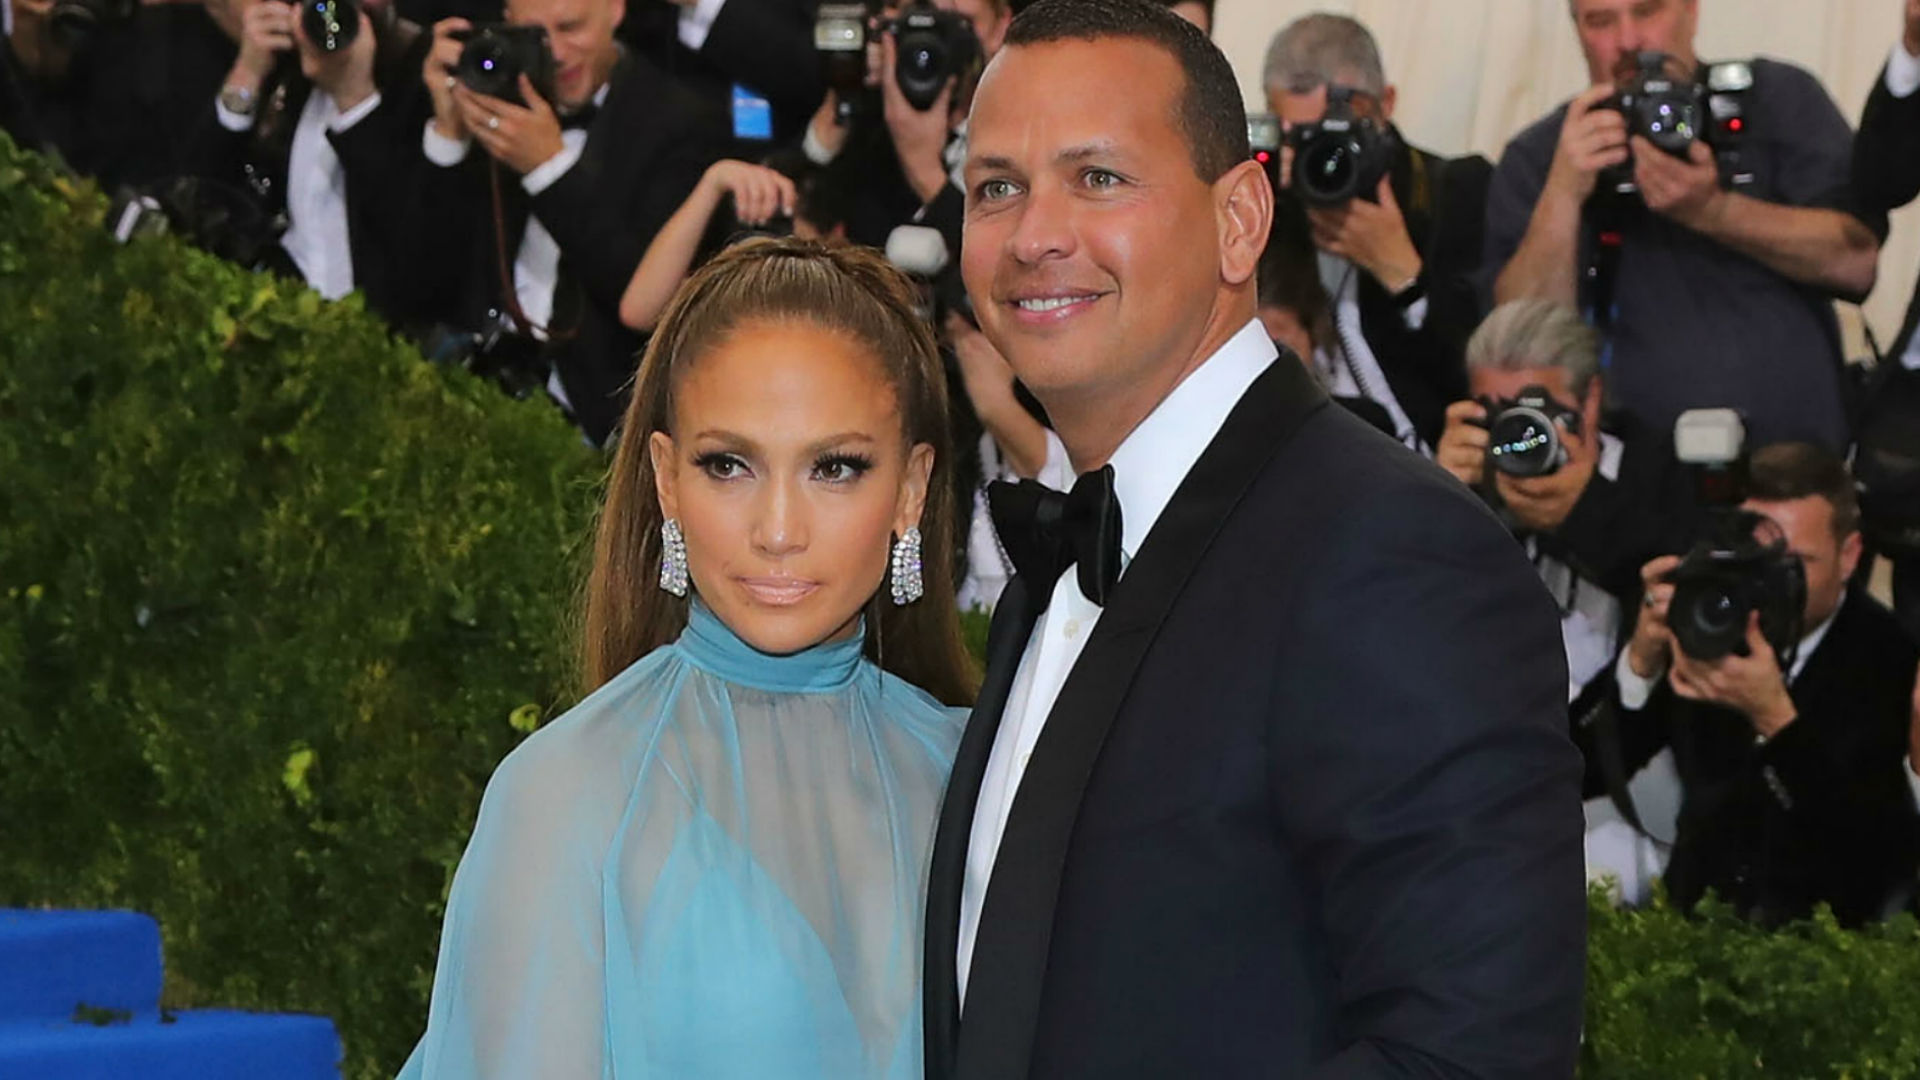 Jennifer Lopez And Alex Rodriguez A Look At Their Relationship Timeline Sporting News